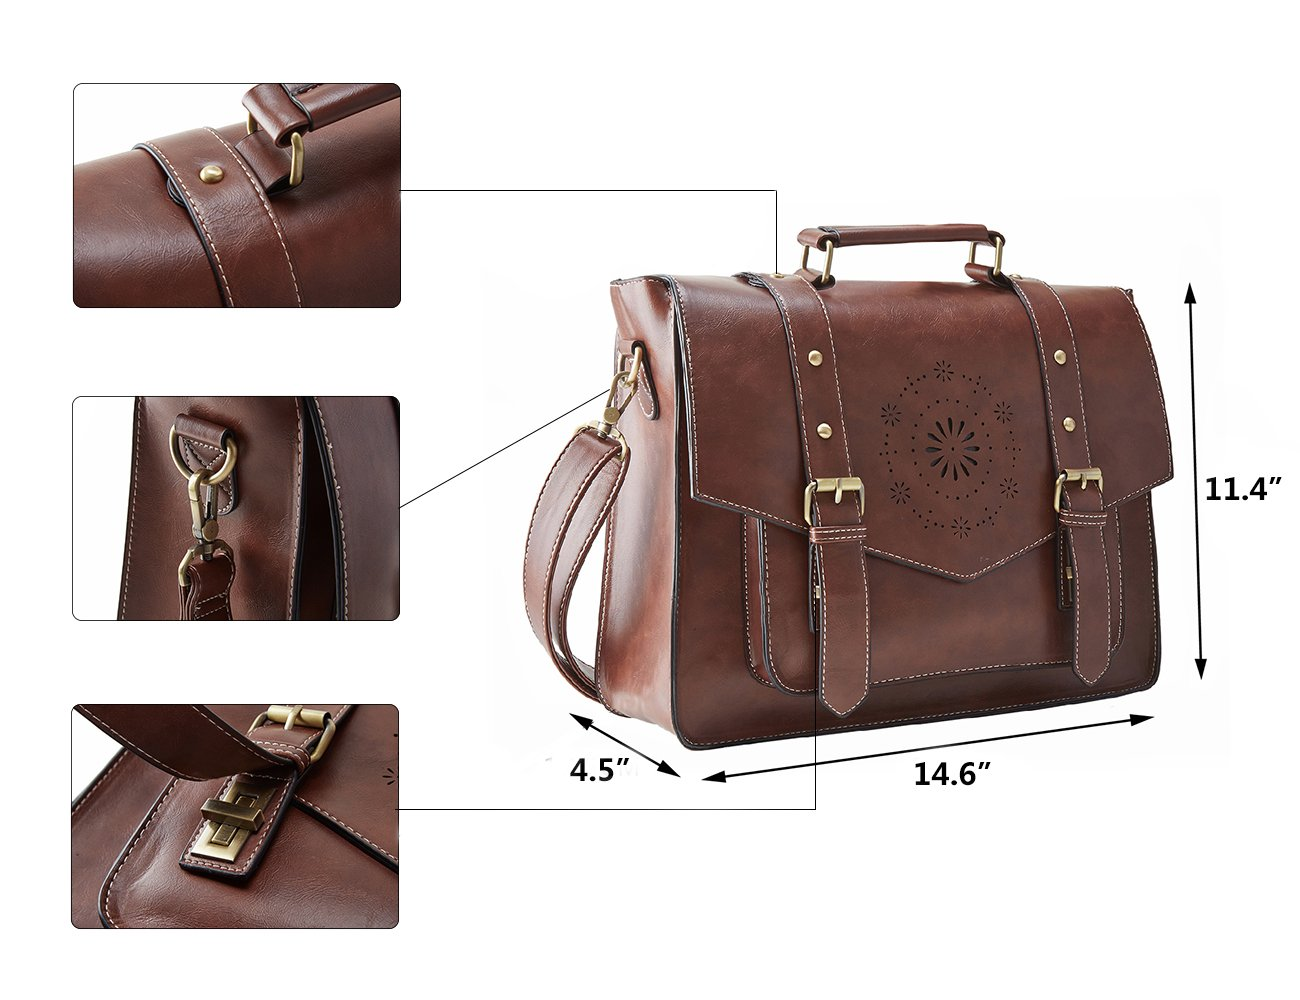 Brown ECOSUSI Womens Briefcase Messenger Laptop Bag PU Leather Satchel Work Bags Fits 15.6 inch Laptops